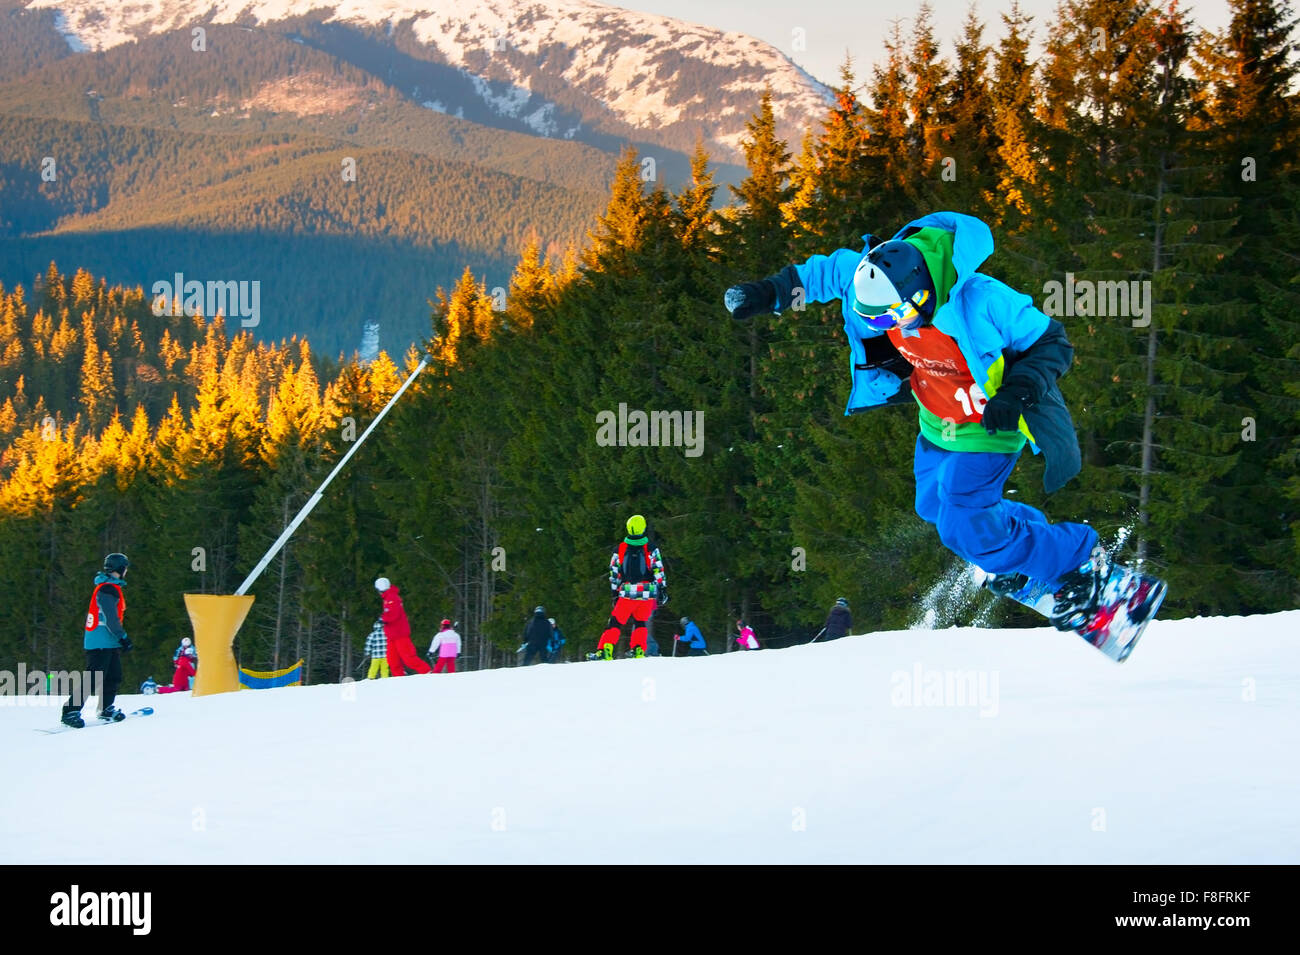 Snowboarder jumping in Bukovel ski resort. Bukovel is the most popular ski resort in Ukraine. - Stock Image